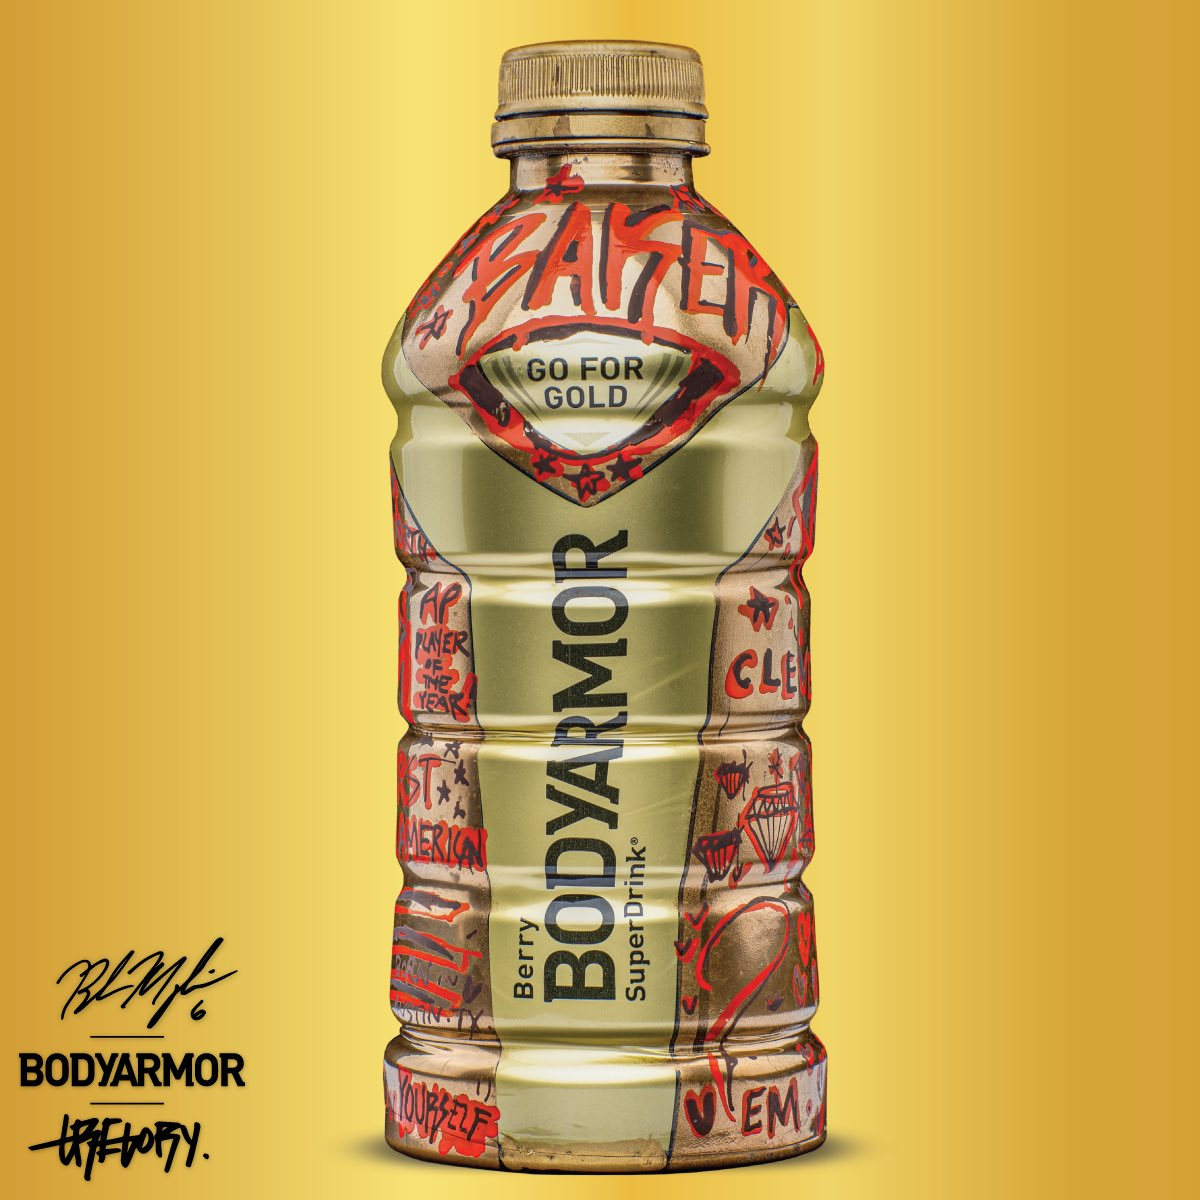 Teamed up with @DrinkBODYARMOR & @GregorySifffor this signed, custom hand-painted Gold Berry bottle ALL proceeds will be donated to @clevekids! Auction is LIVE until 5/22 BID NOW: https://t.co/nno39T7NJb https://t.co/ZIIwo82u5P